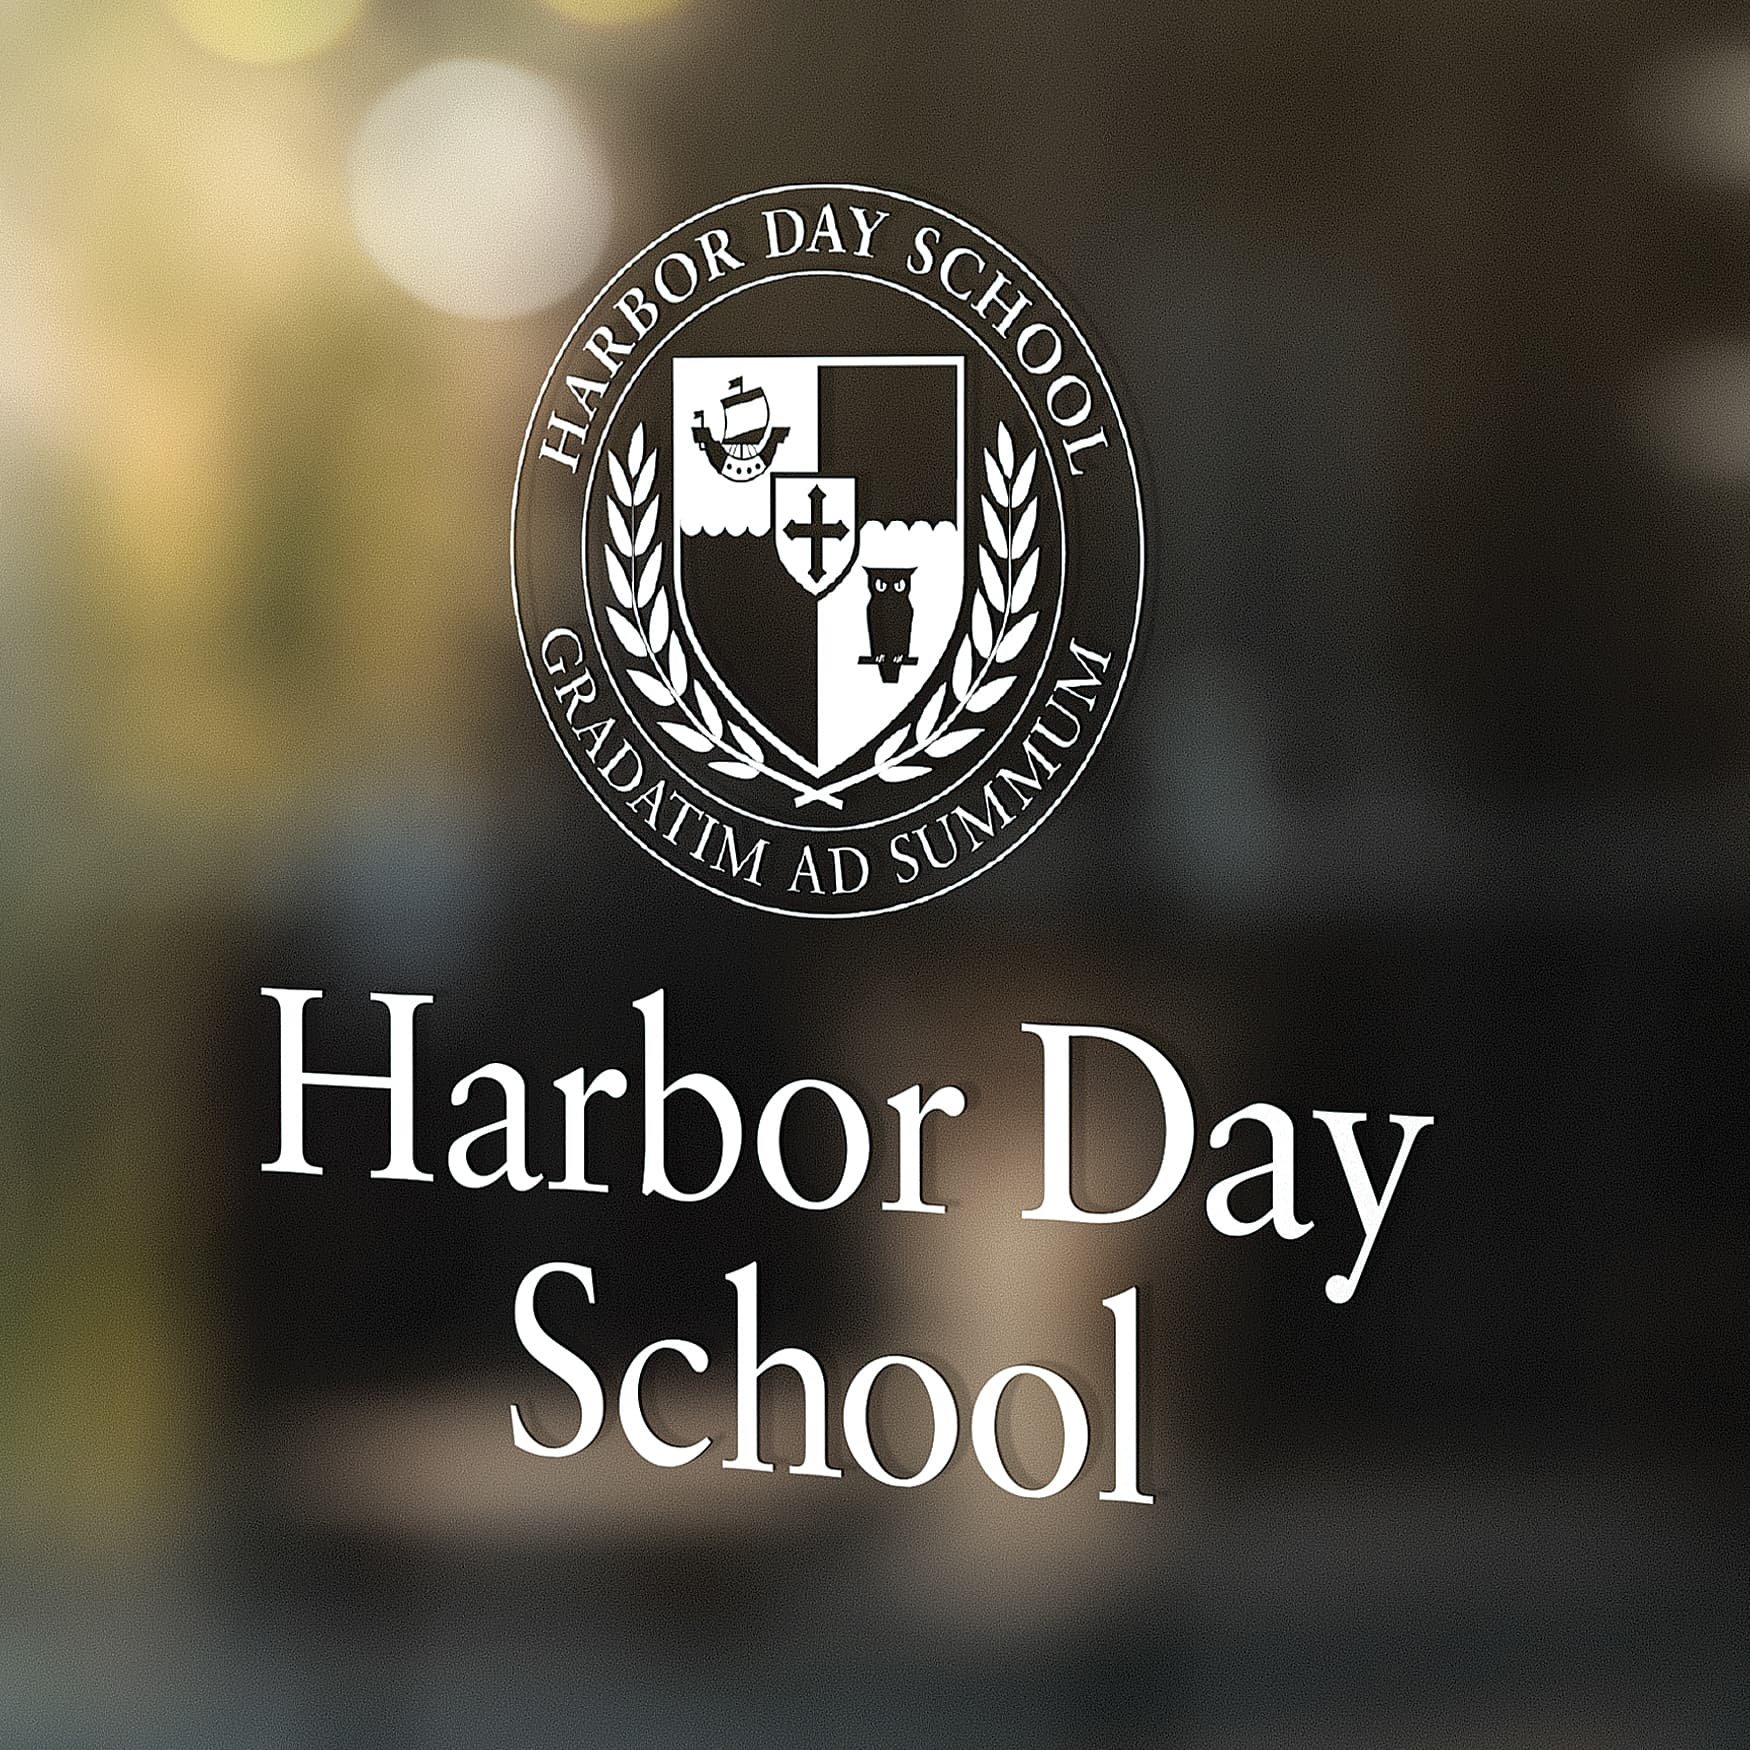 Harbor Day School logo printed on a glass reflective window.